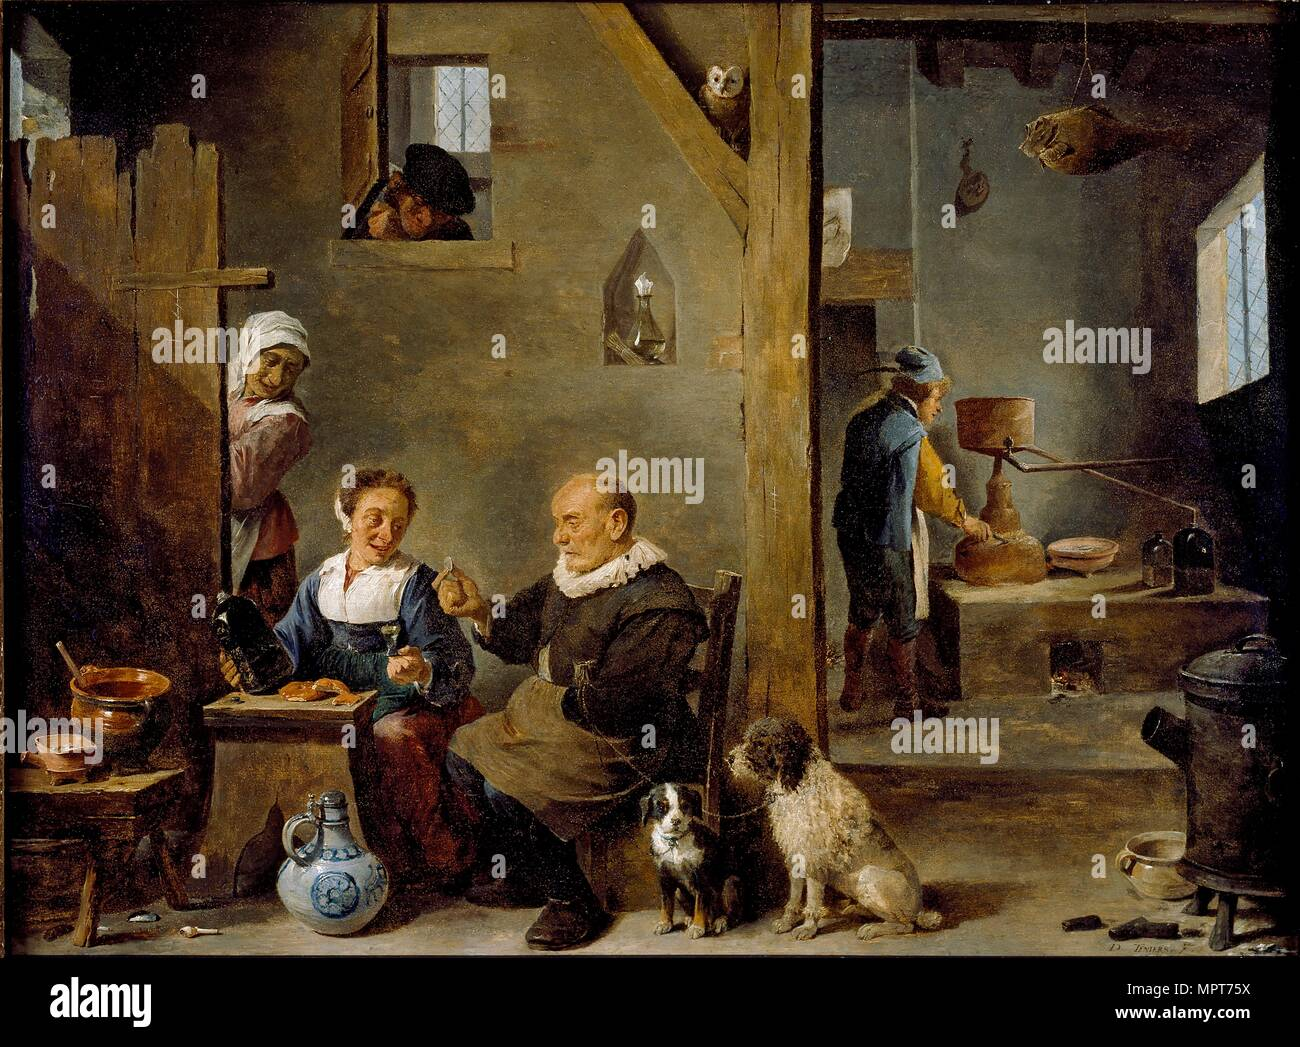 A Distillery with an elderly Man buying Gin from a Woman, c1640-1649. Artist: David Teniers II. Stock Photo